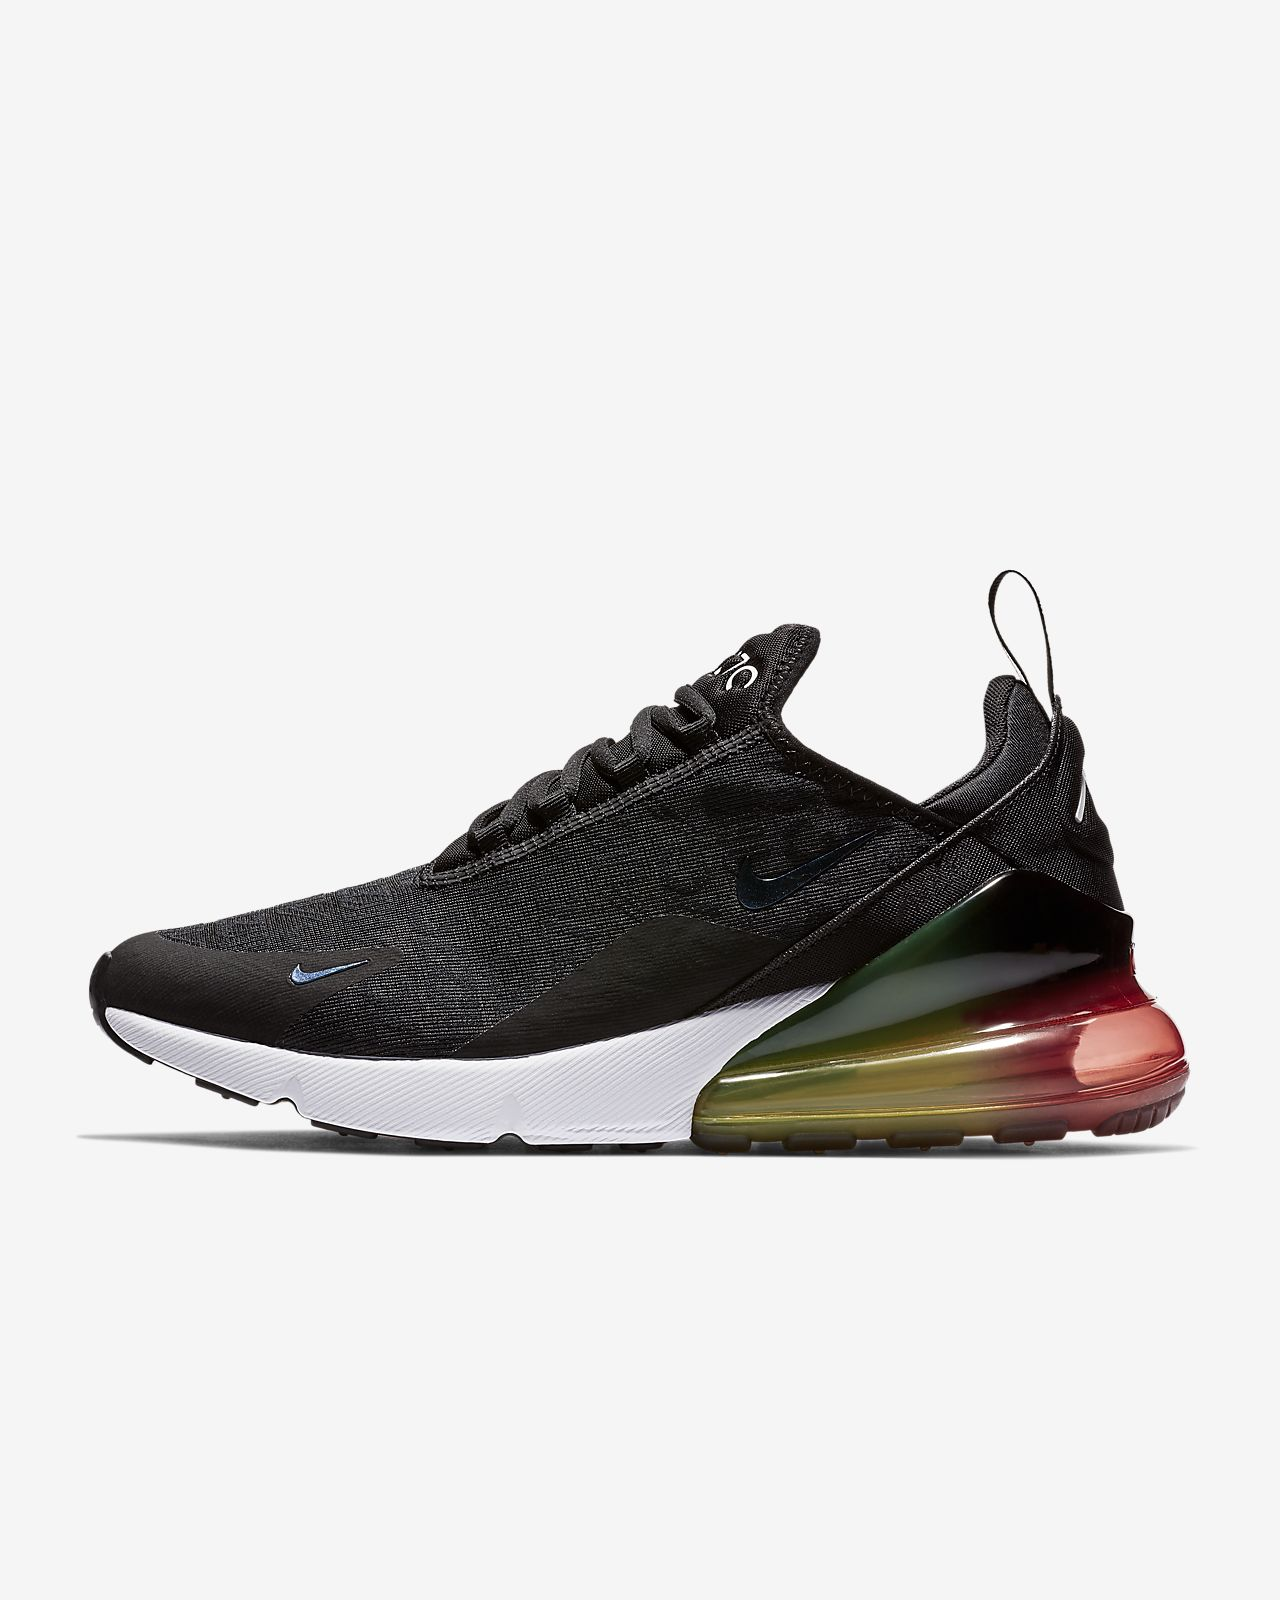 Chaussure Nike Air Max 270 SE pour Homme